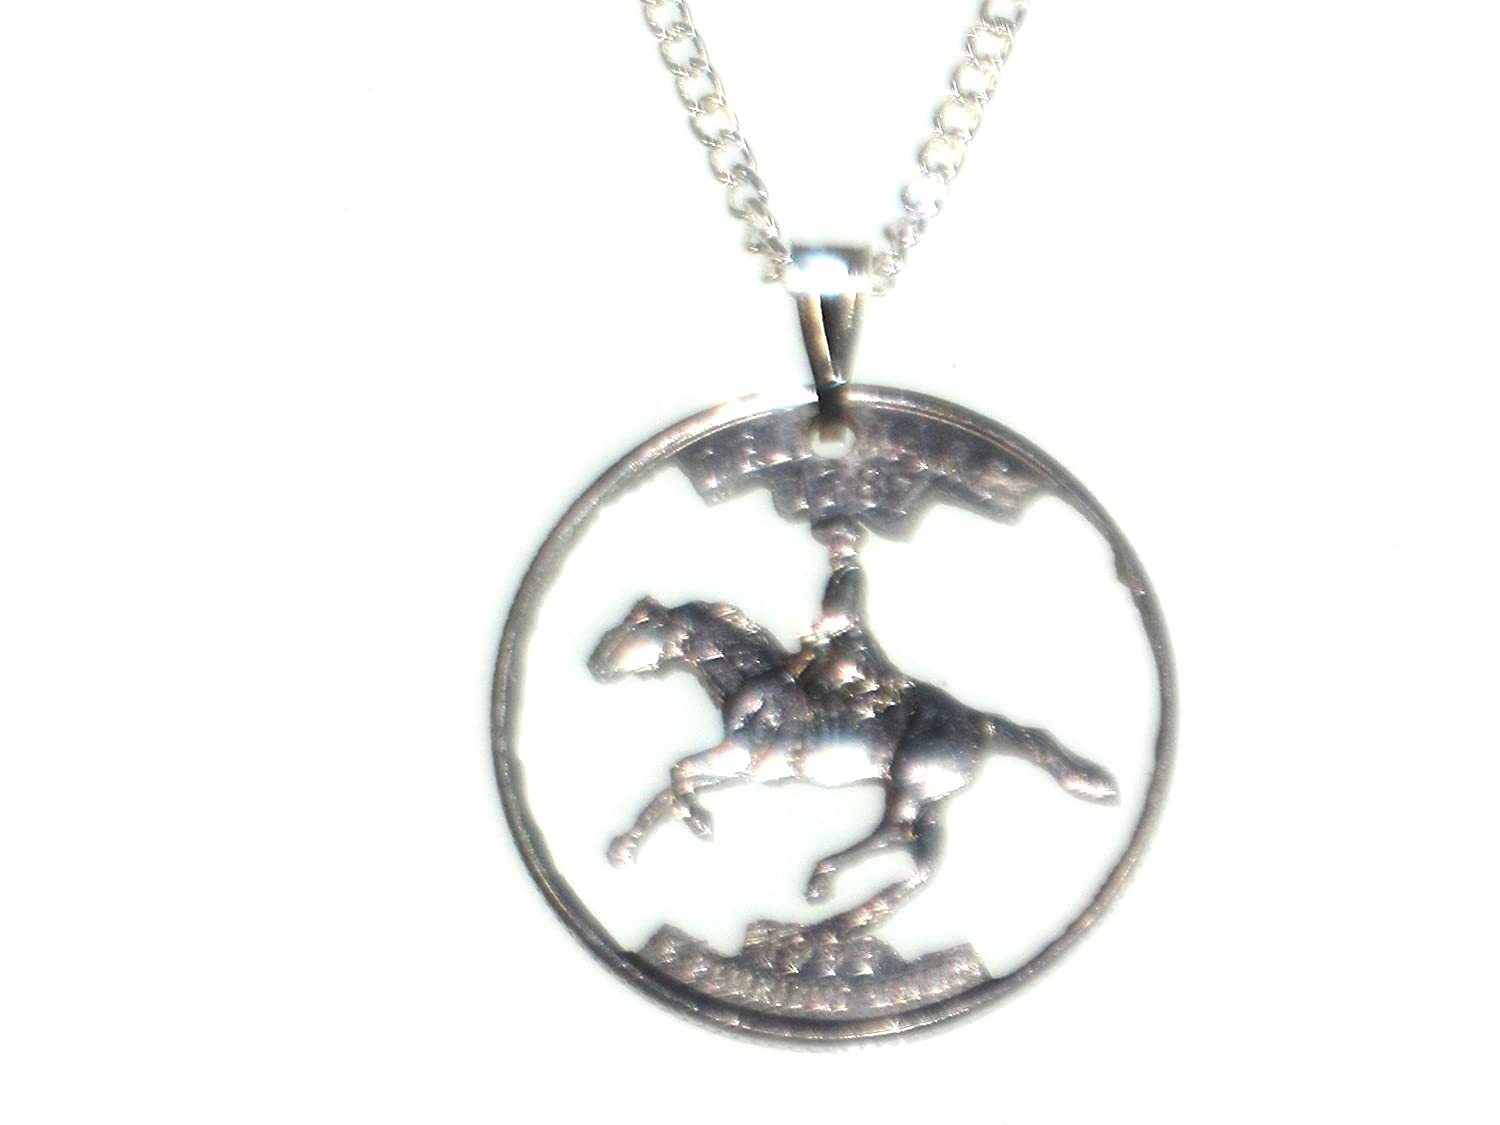 Hand Cut Delaware State Quarter Mounted with a Bale and 24 Inch Silver Tone Chain